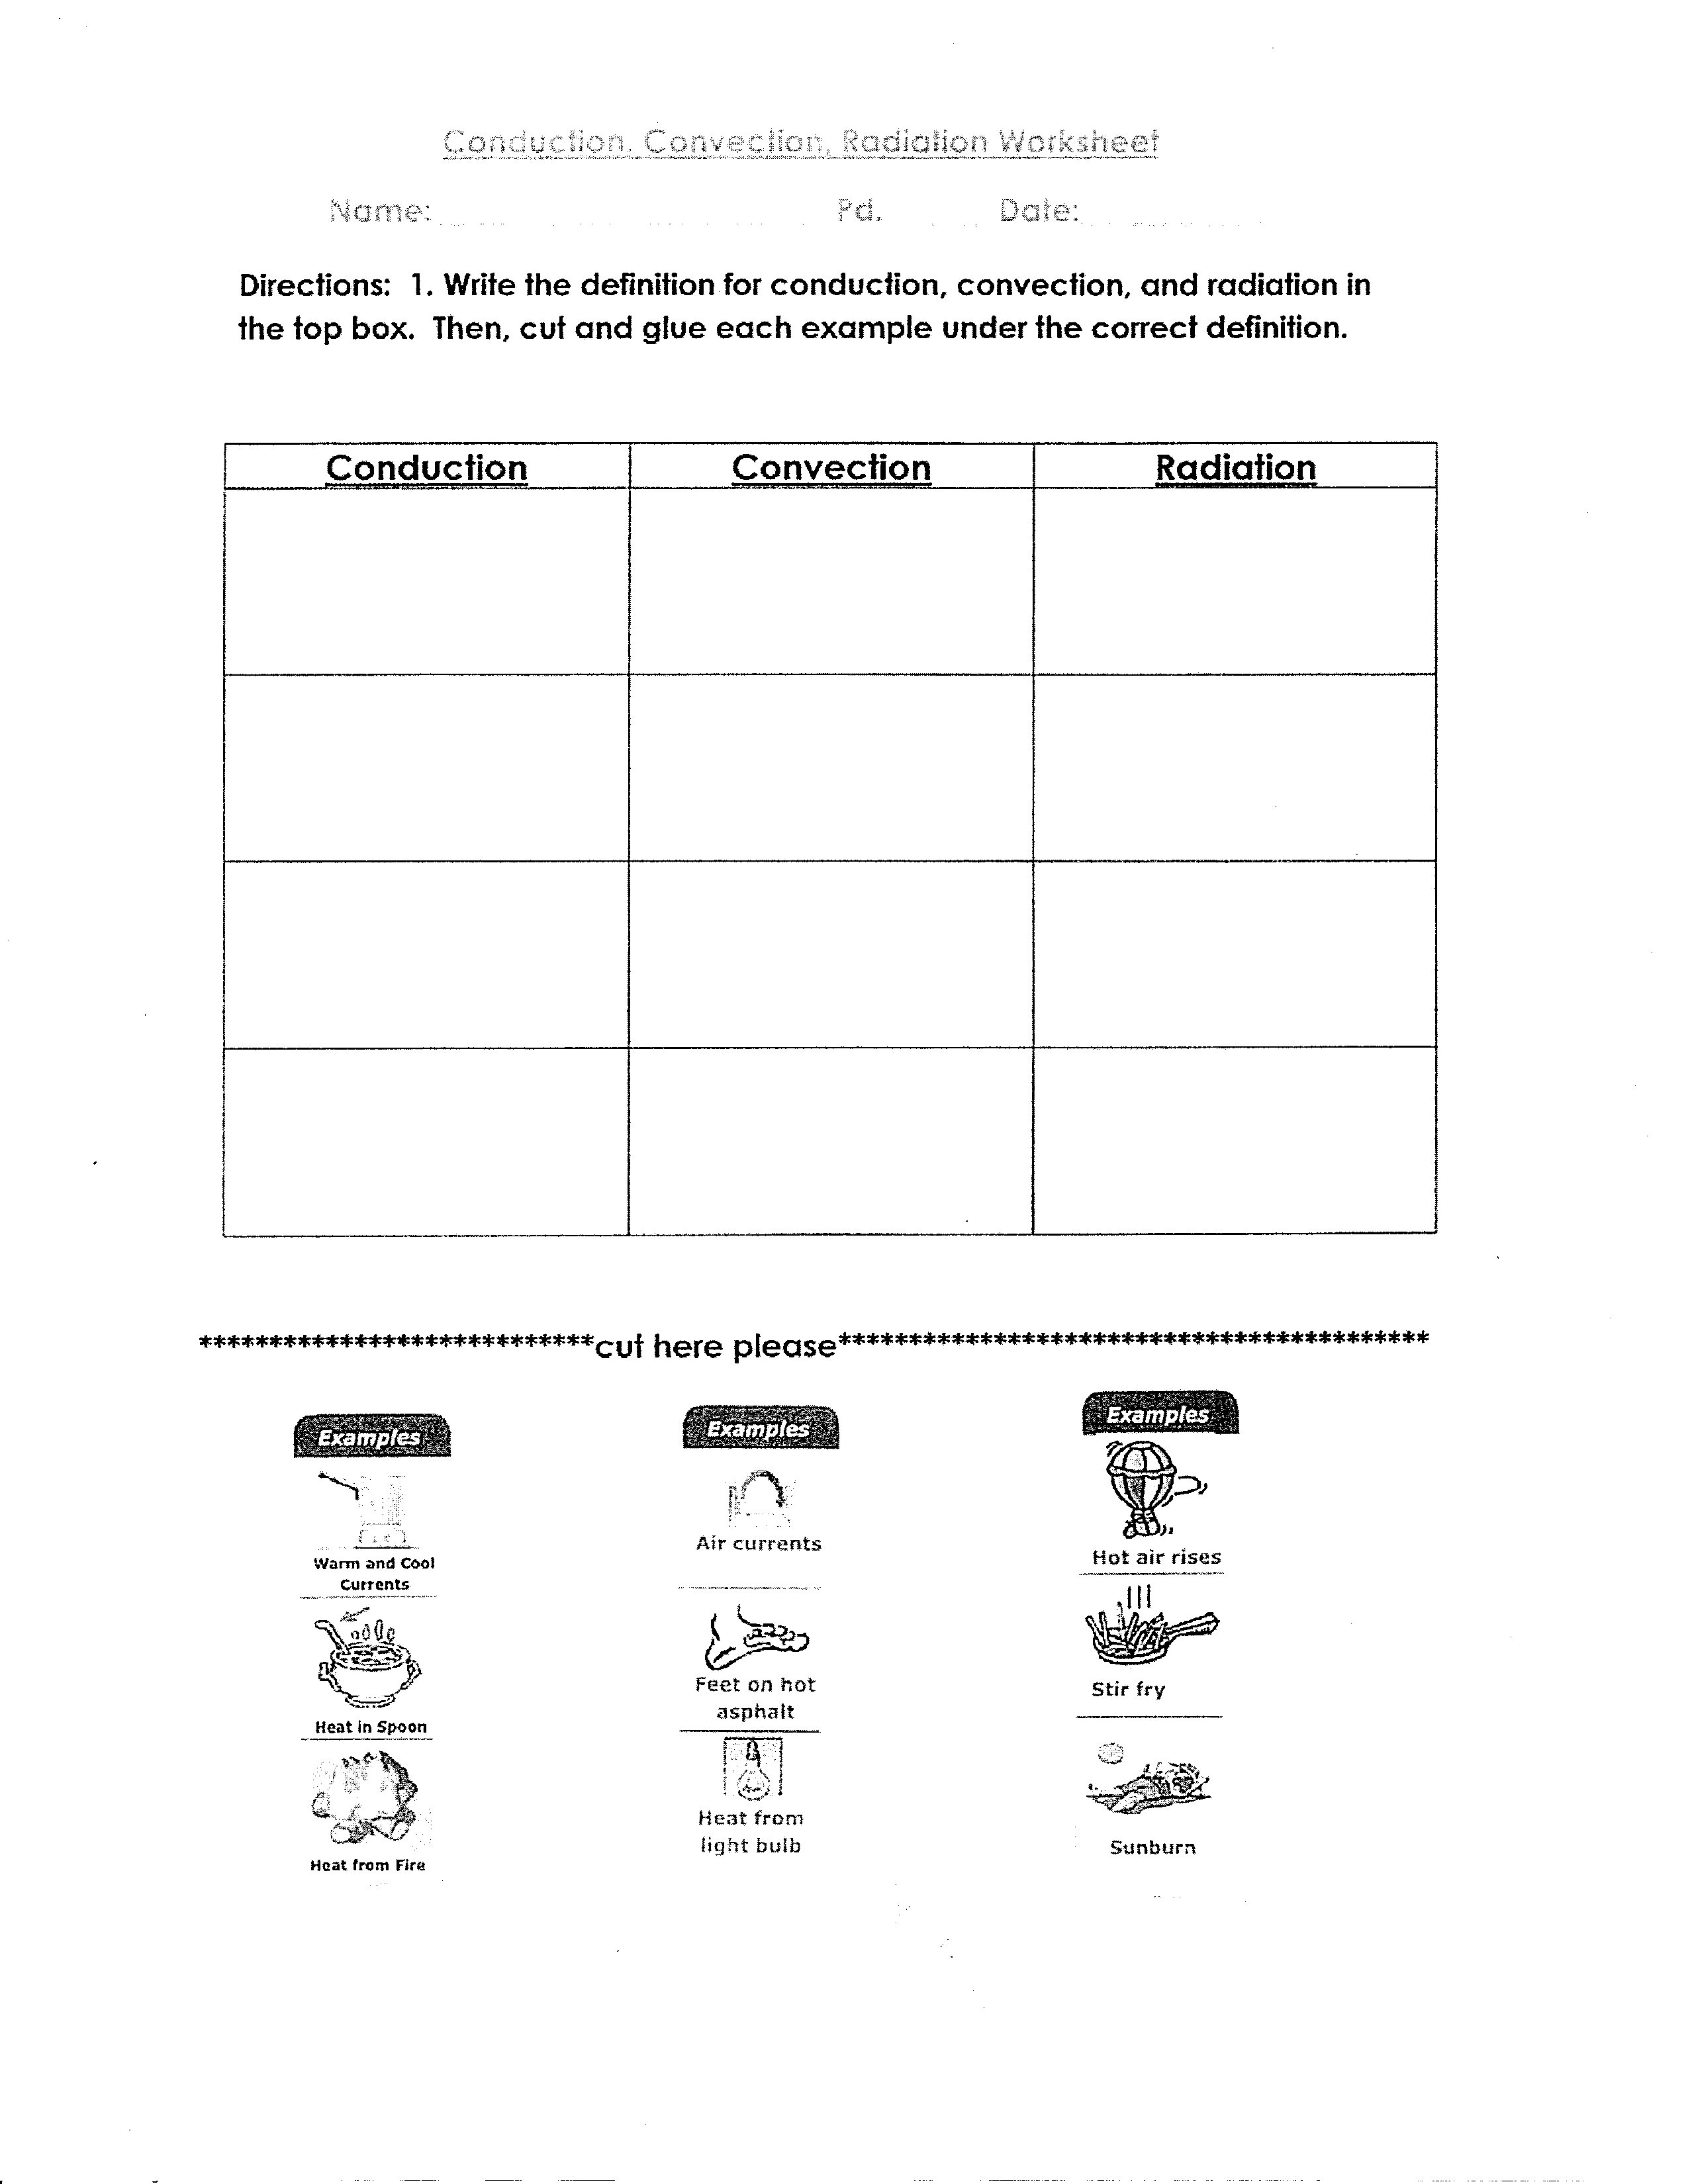 Worksheets Convection Conduction Radiation Worksheet conduction convection radiation worksheet free worksheets library ssignments mr em n